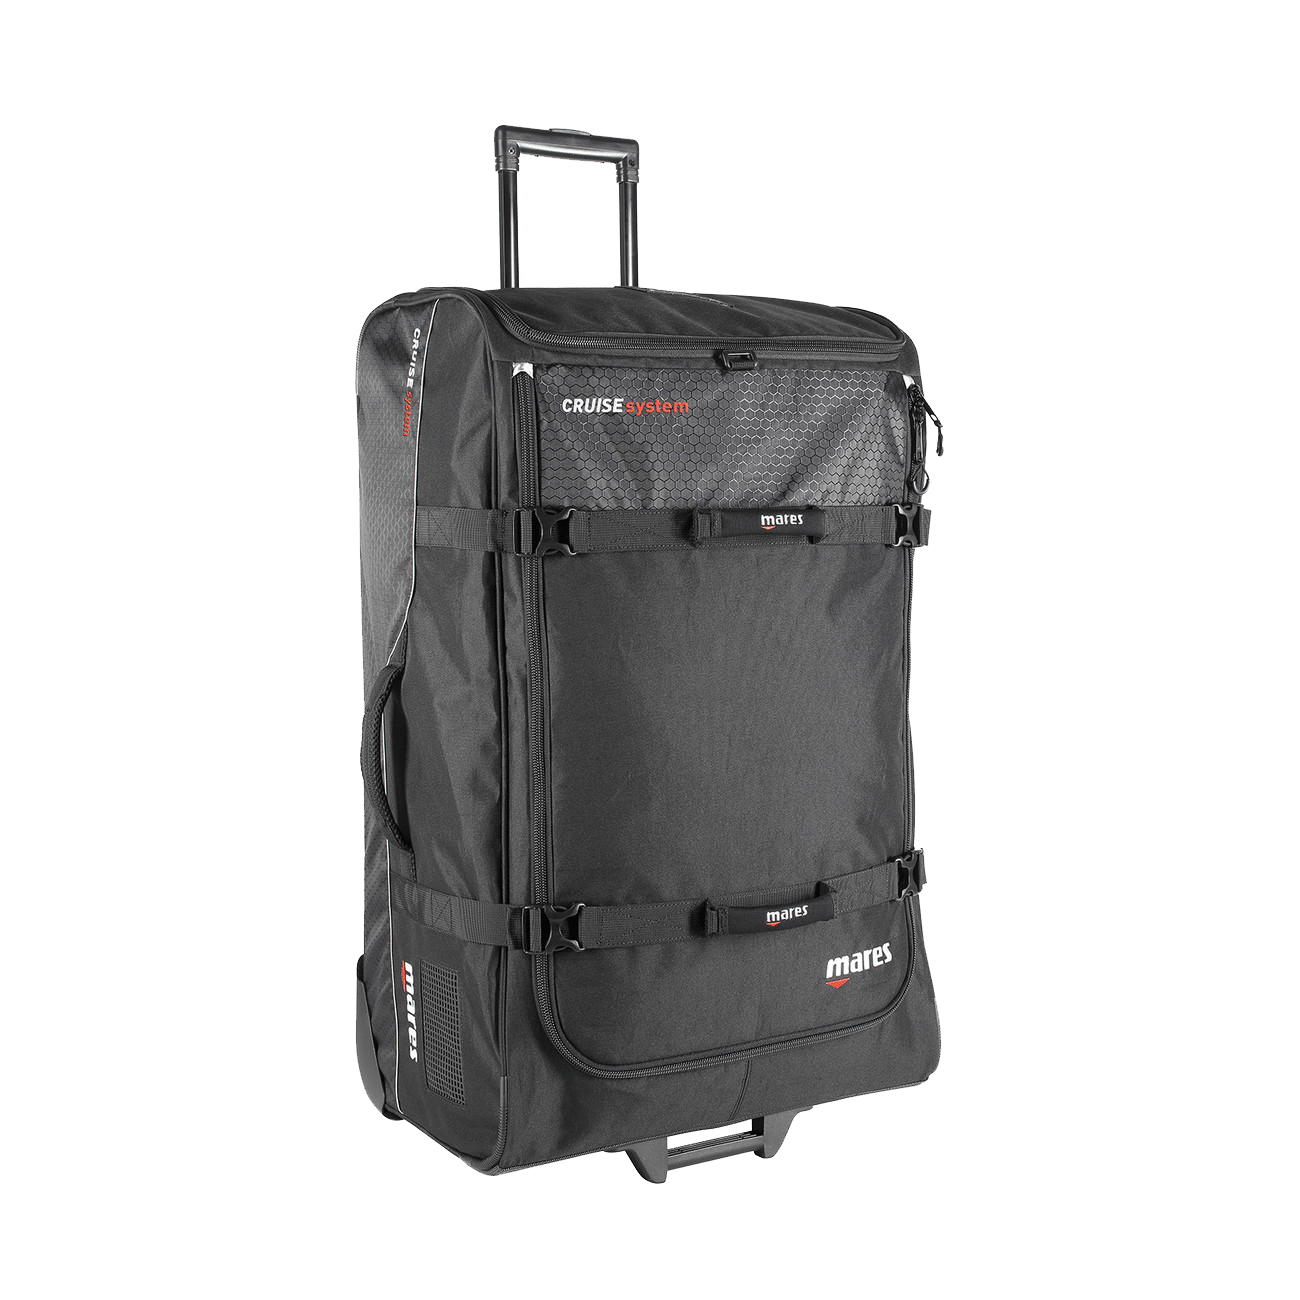 Mares Cruise System Bag   Mares Bags   Mares Singapore